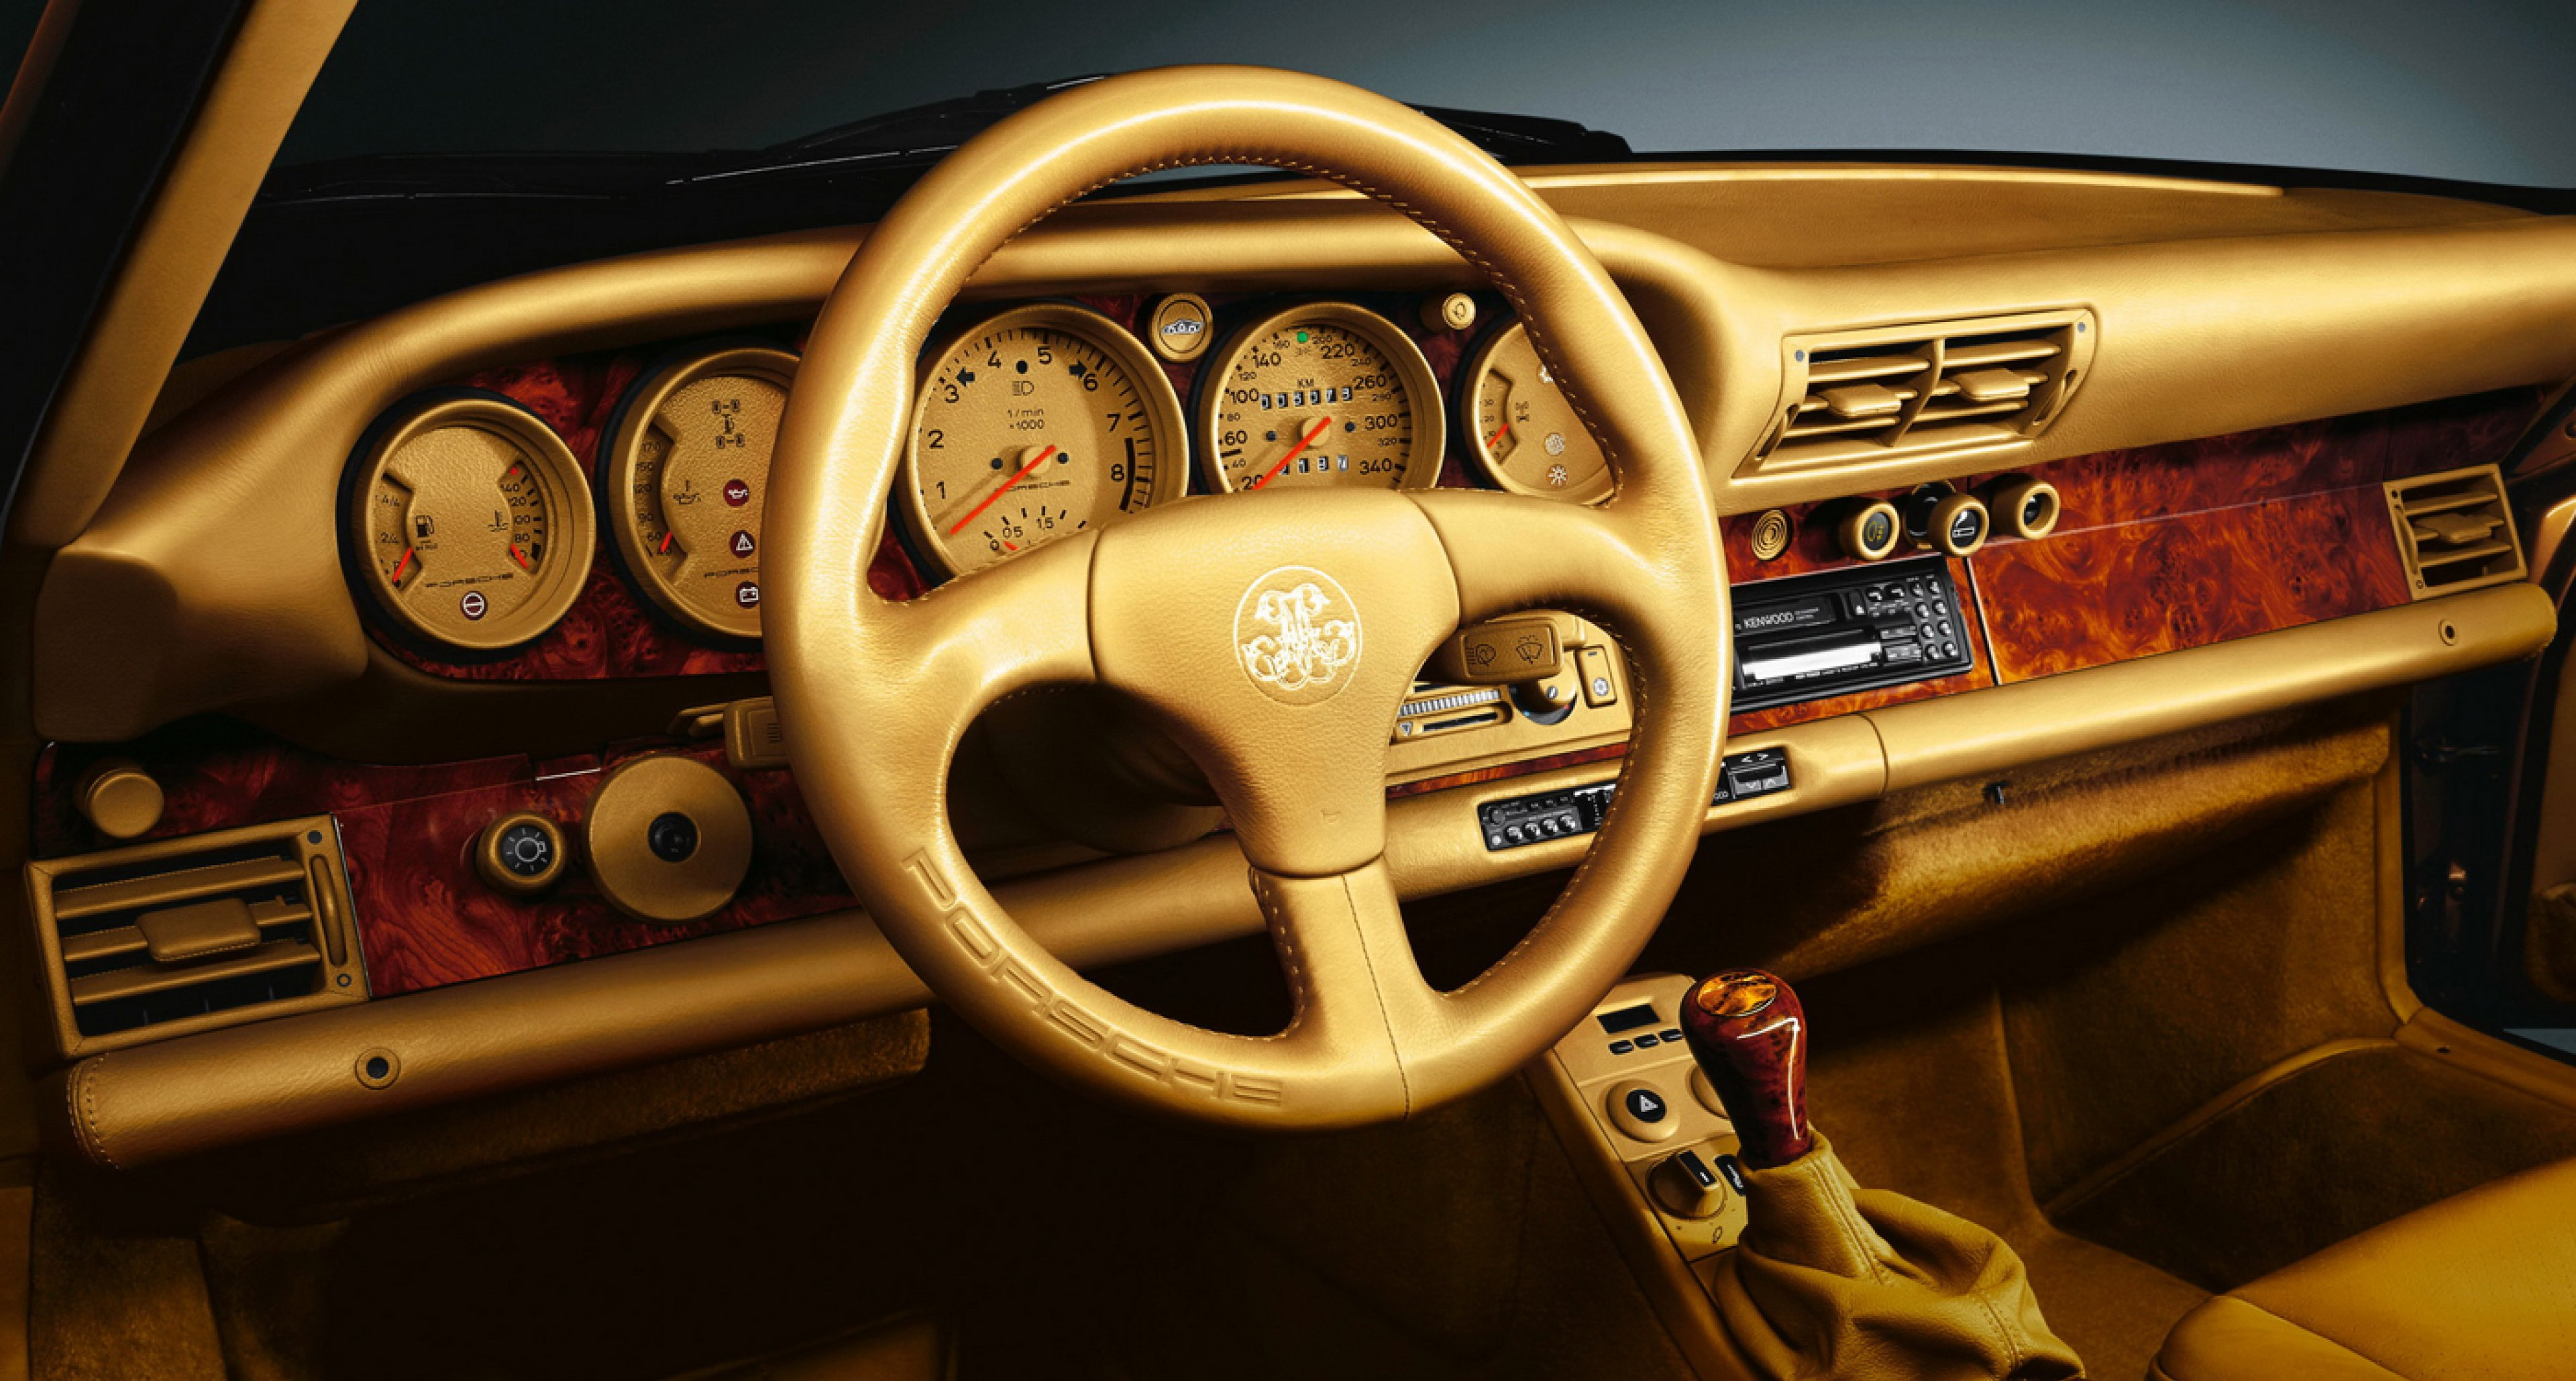 One of seven Porsche 959 that have been personalized for Sheikh Abdul Aziz Khalifa Althani in 1989.